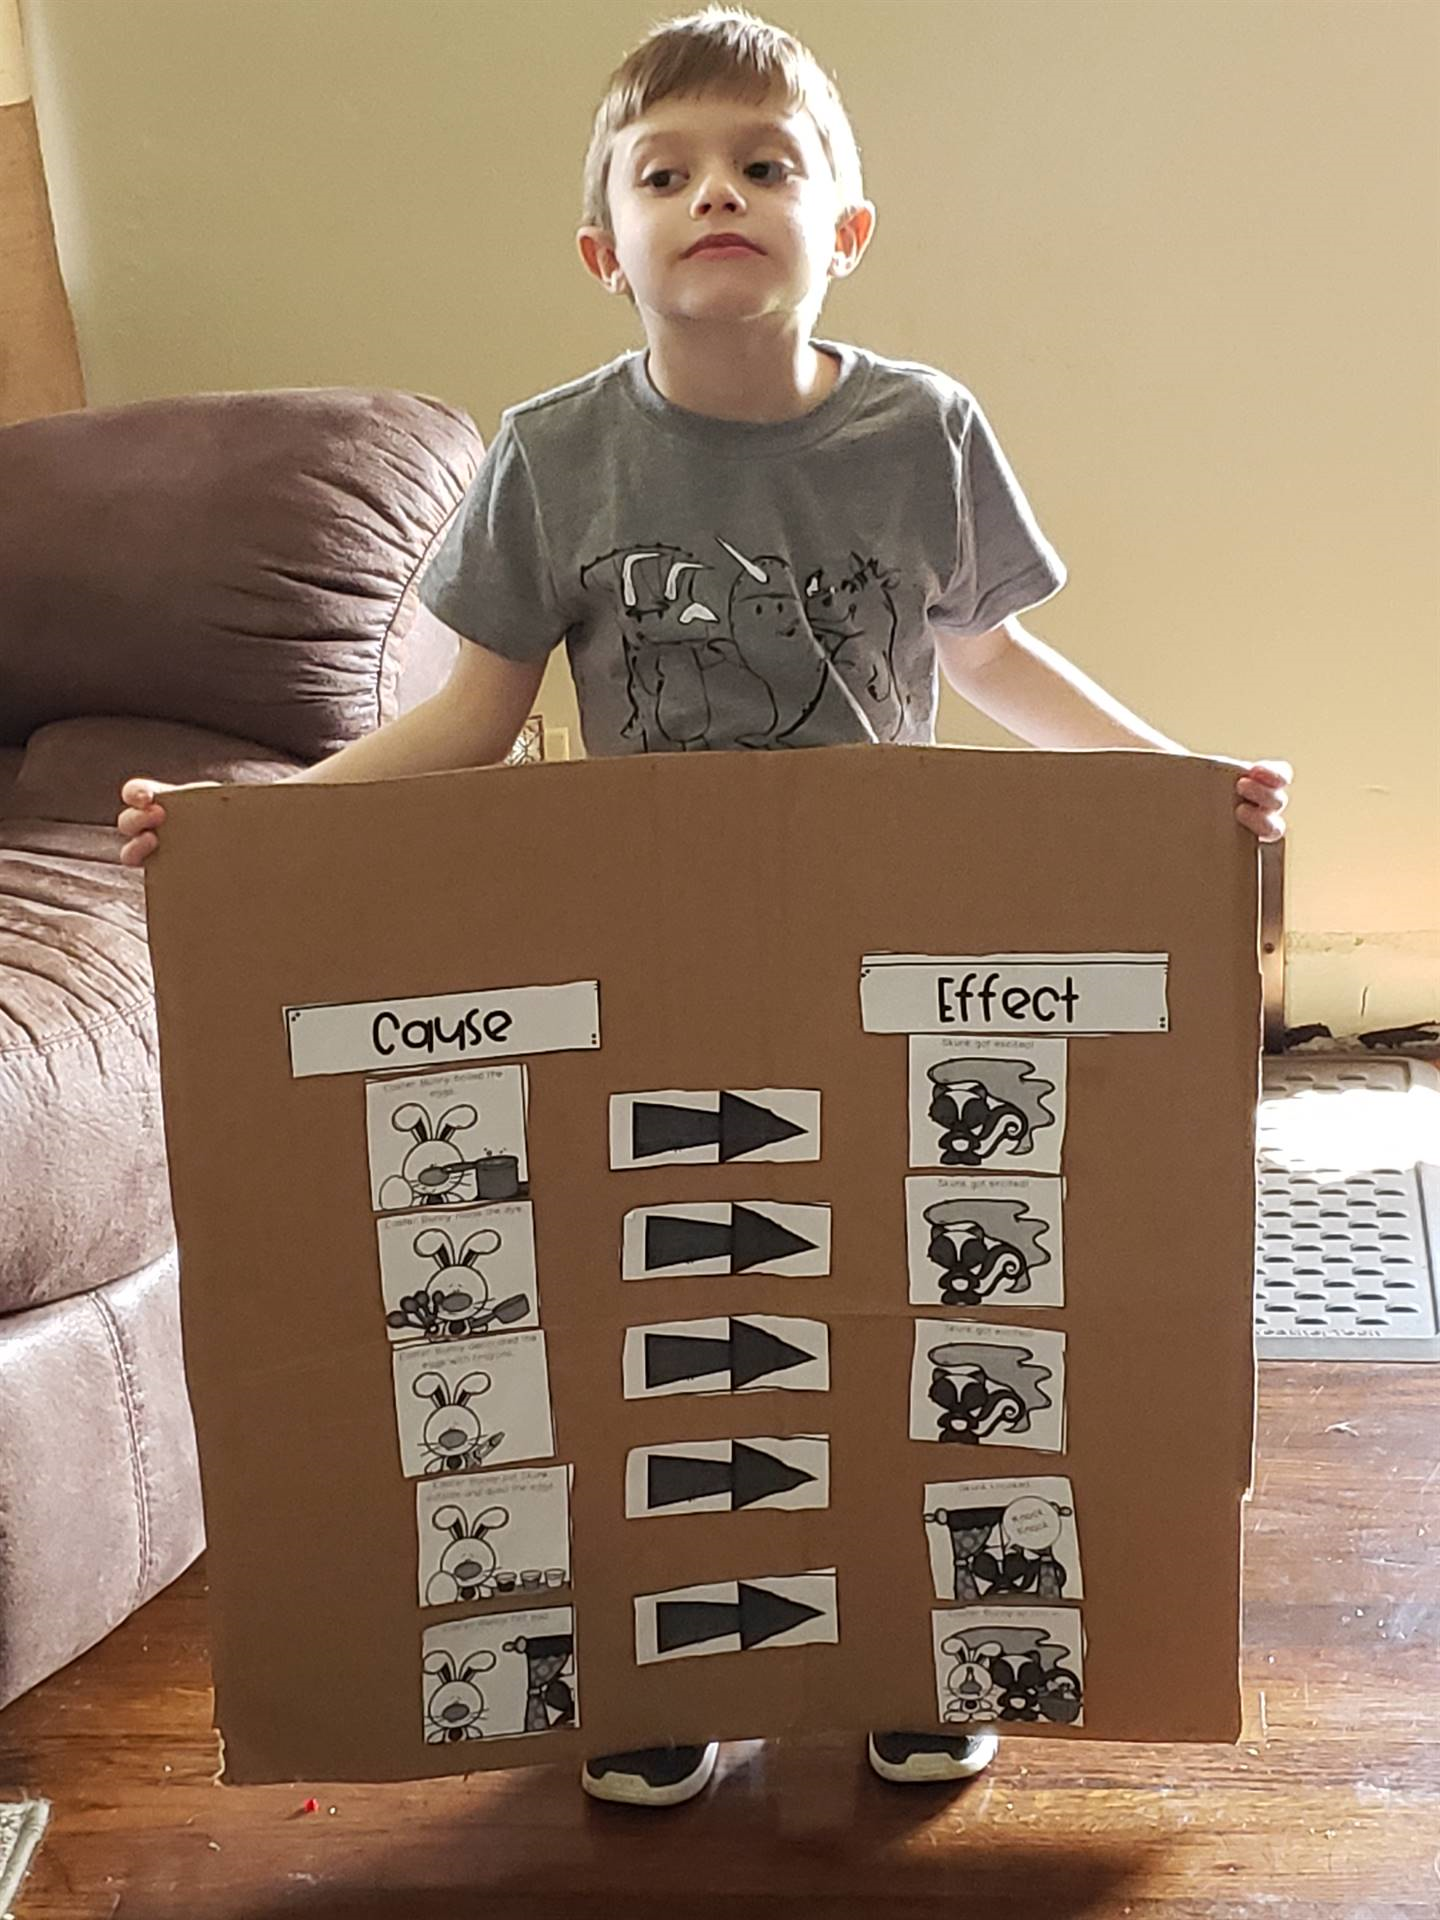 boy holding cardboard cause and effect poster